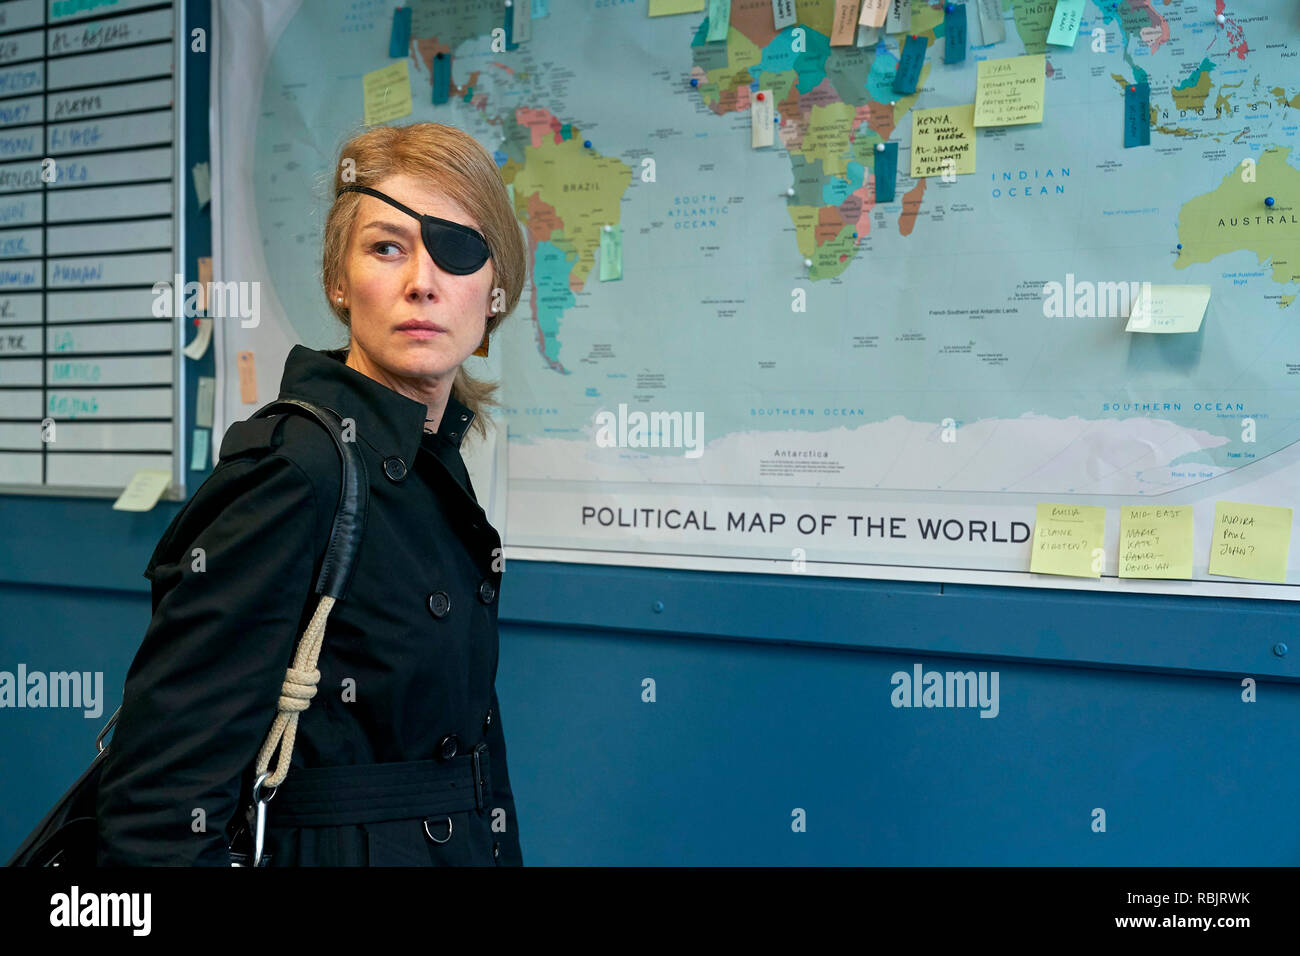 Prod DB © Acacia Filmed Entertainment - Thunder Road Pictures / DR A PRIVATE WAR de Matthew Heineman 2018 USA/GB Rosamund Pike. biopic; biography; femme journaliste; journalist; Marie Colvin; femme reporter; borgne; one eyed; cache-oeil noir; eyepatch based on the Vanity Fair article 'Marie Colvin's Private War' by Marie Brenner d'apres l'article de Marie Brenner - Stock Image